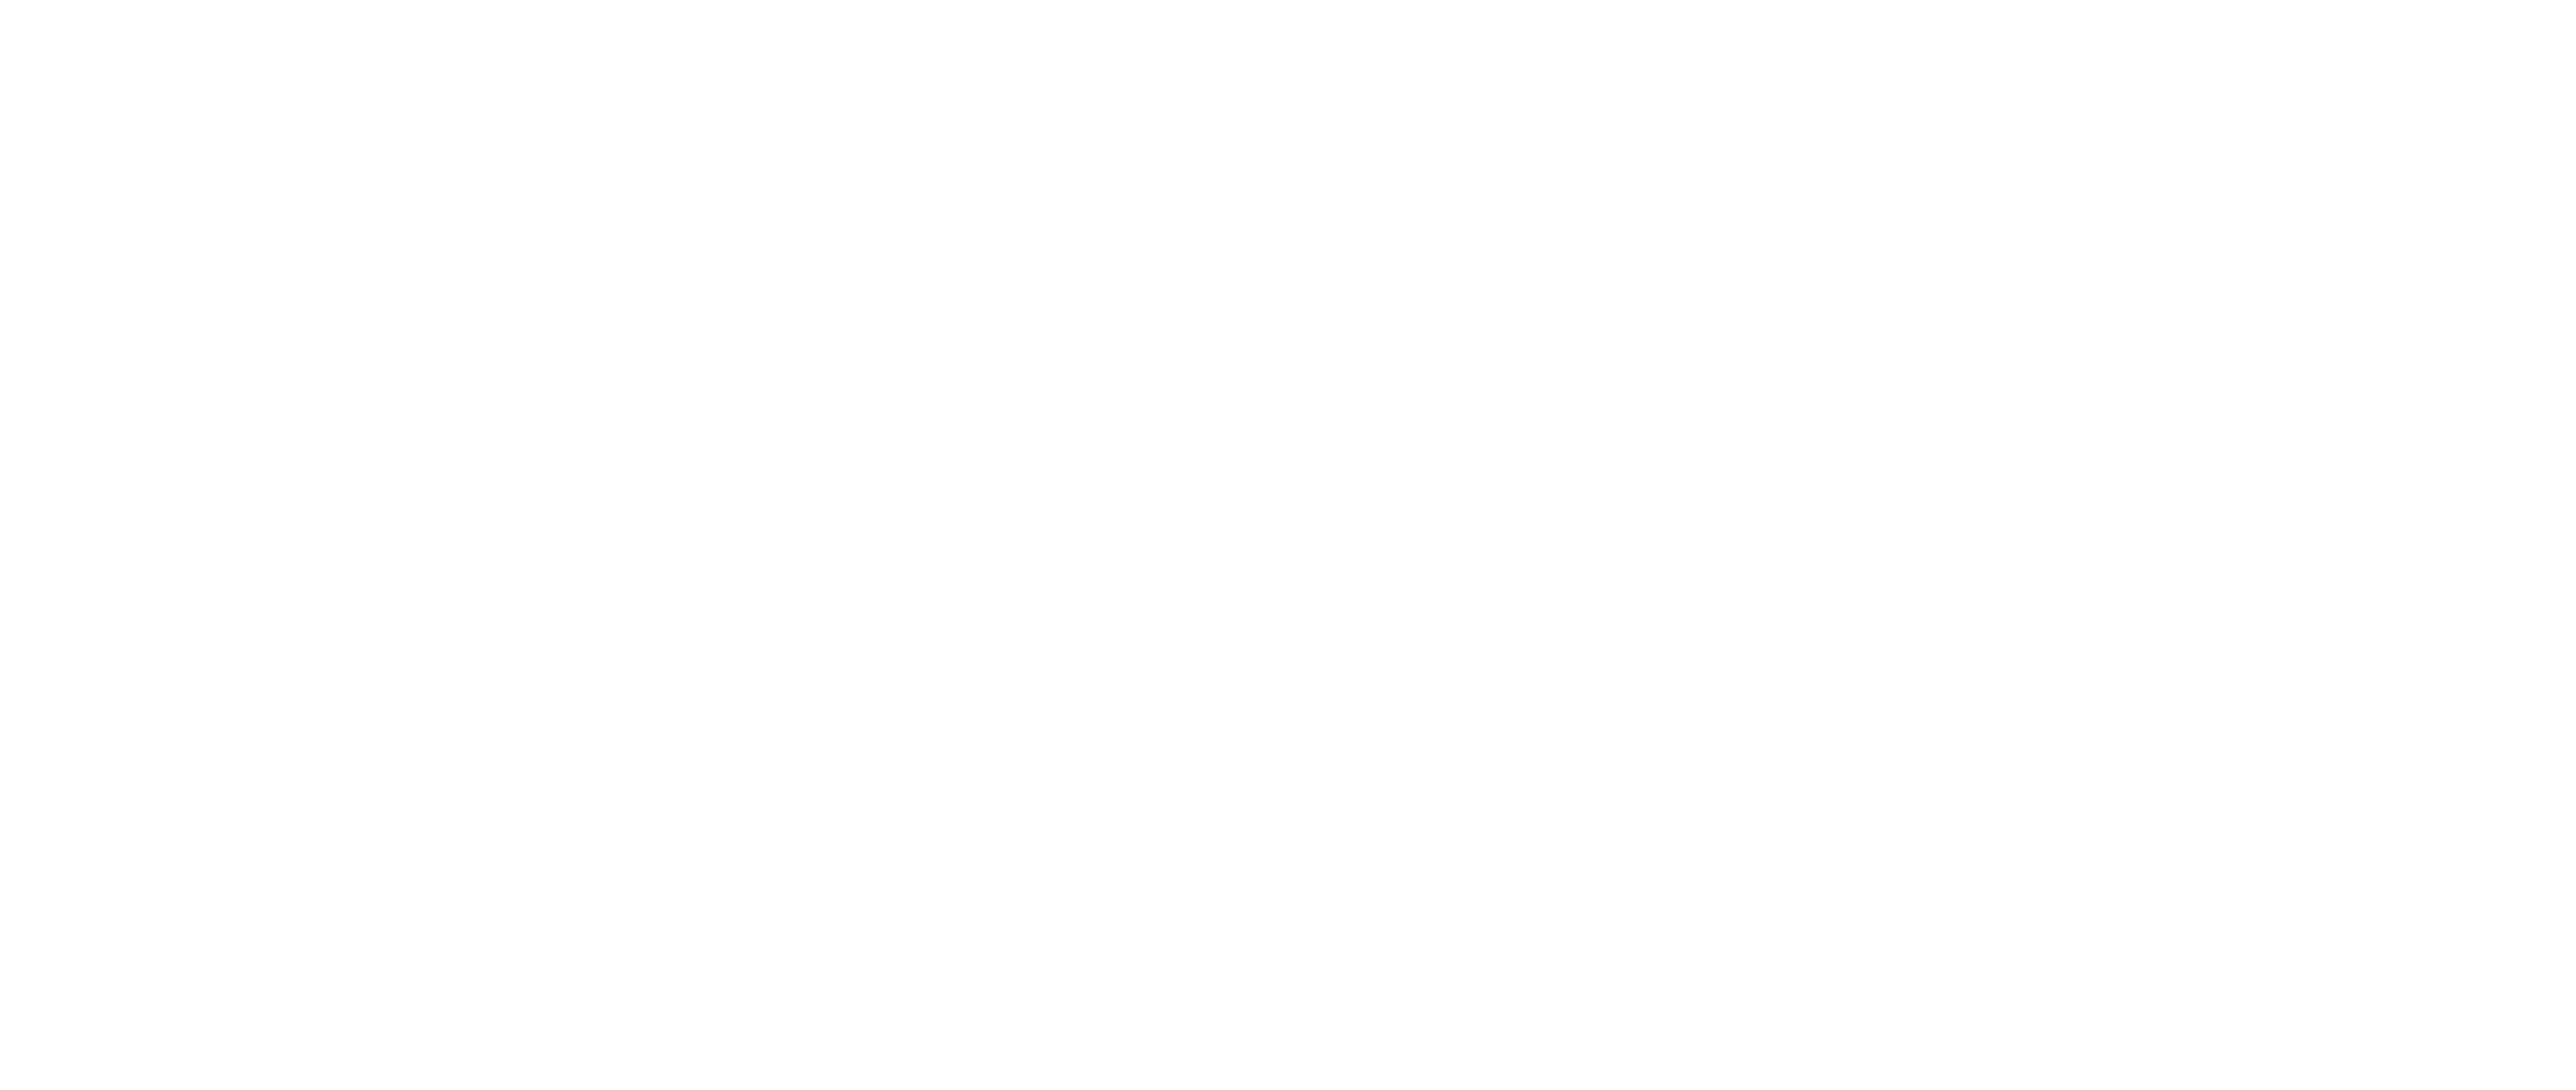 Student Volunteer Army